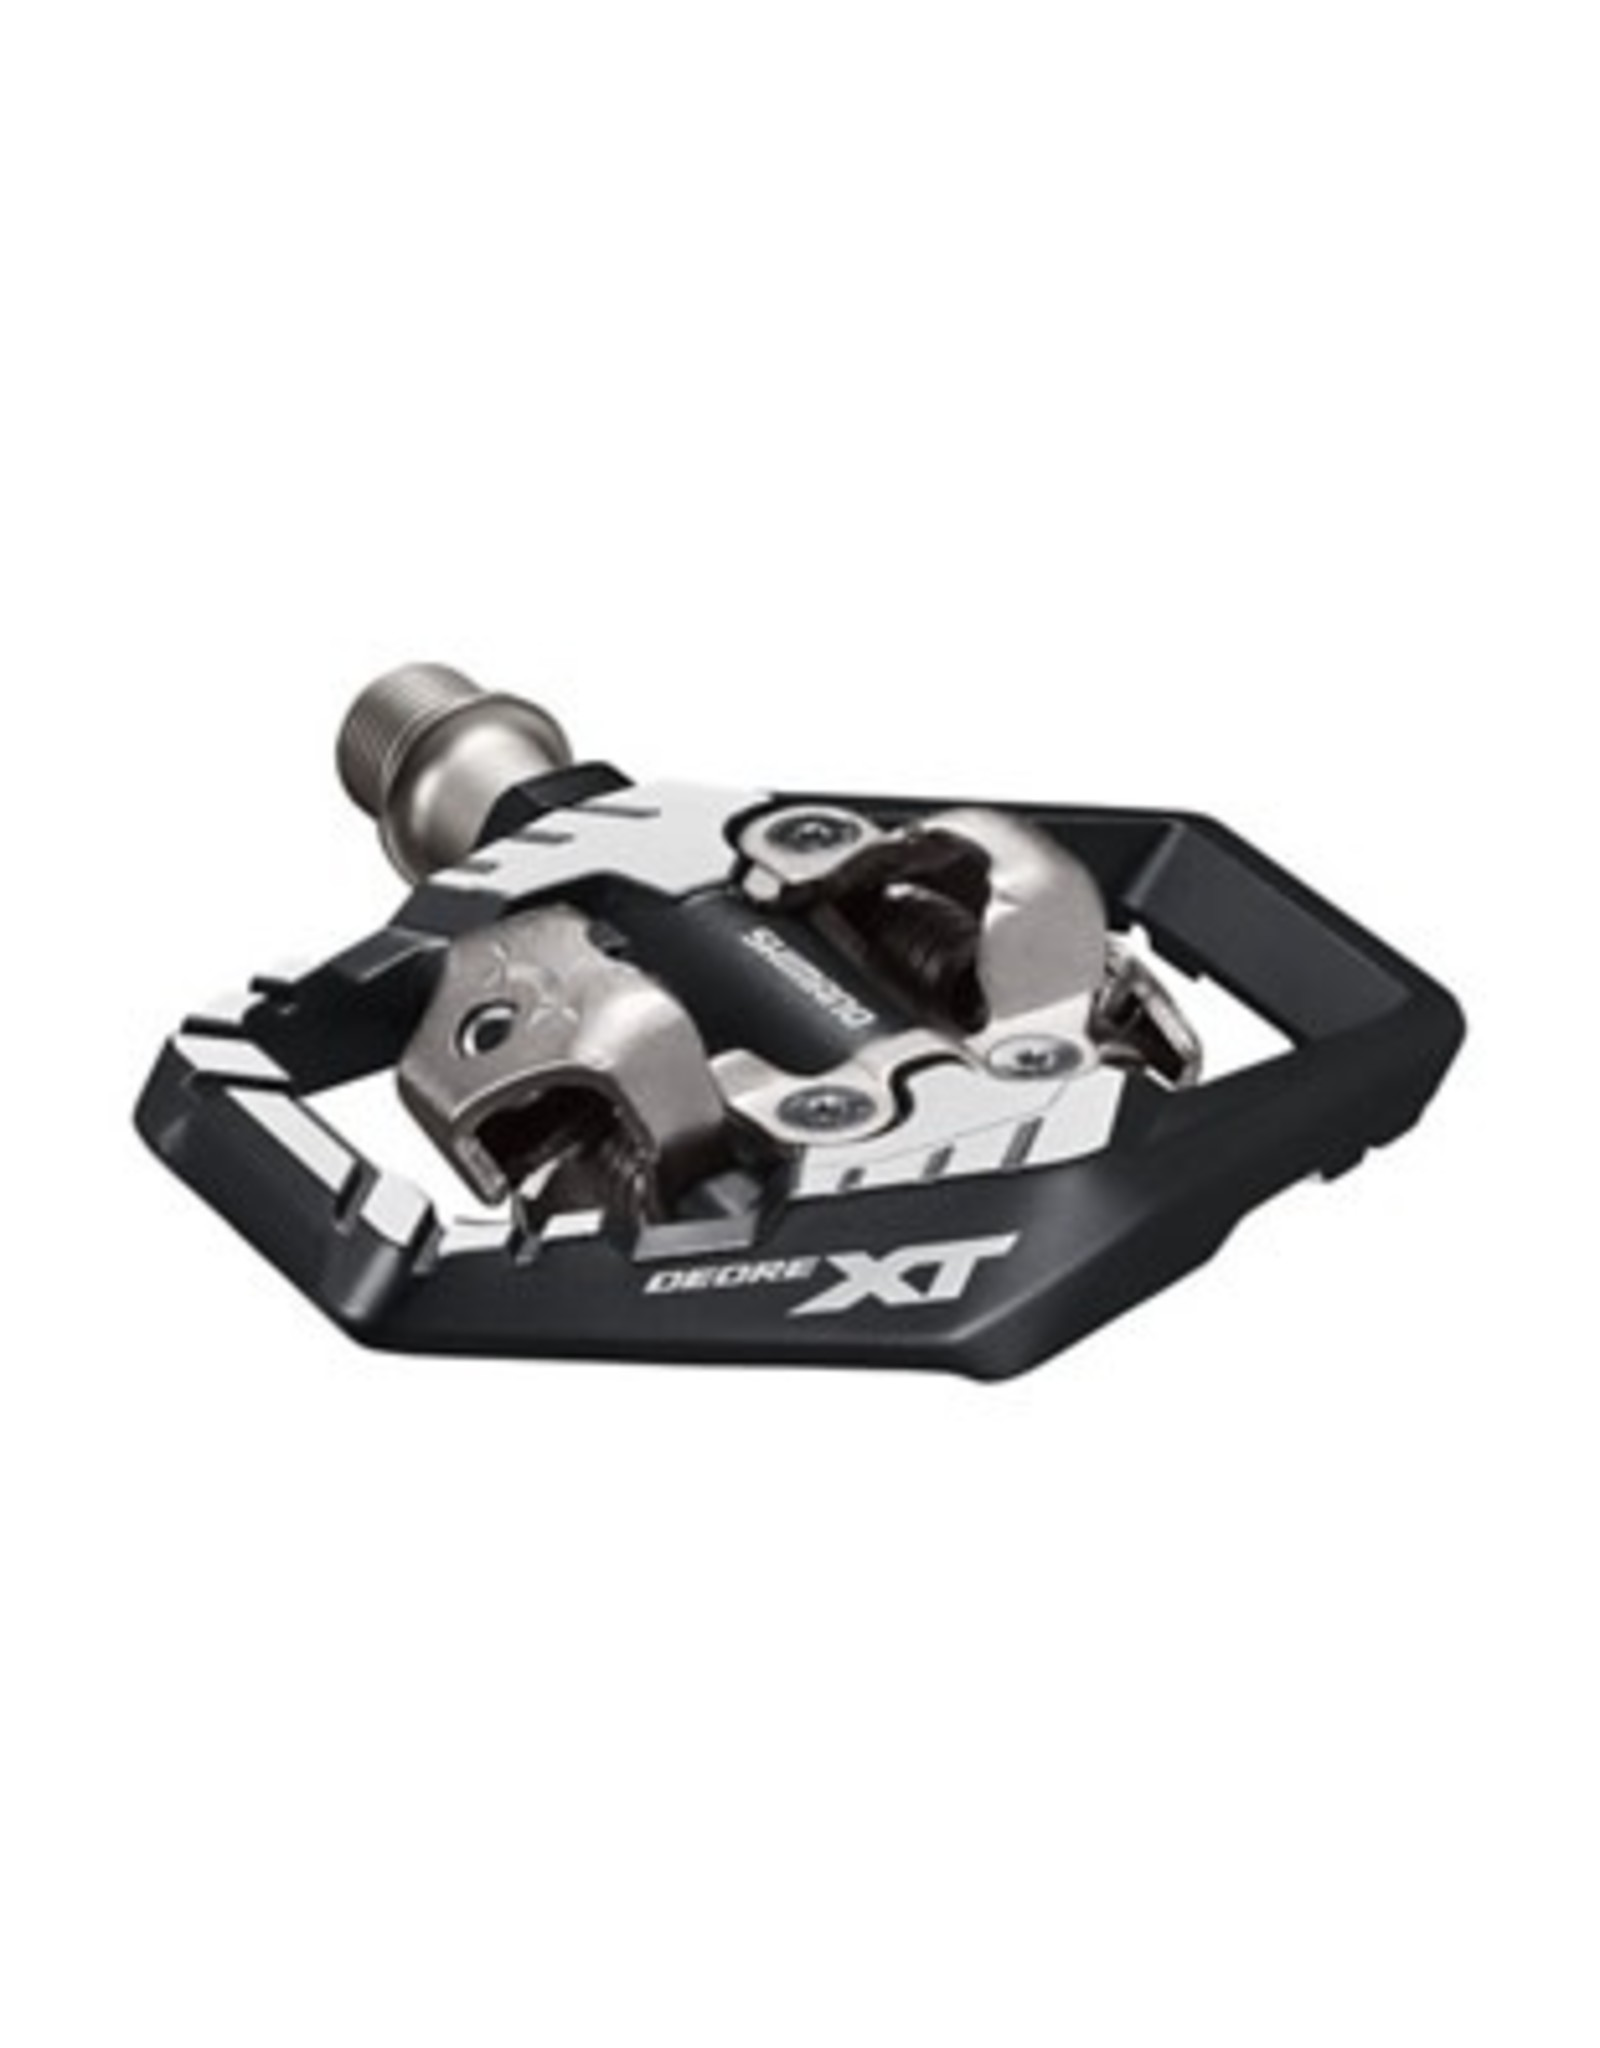 Shimano SHIMANO PEDAL PD-M8120 SPD PEDALS DEORE XT TRAIL